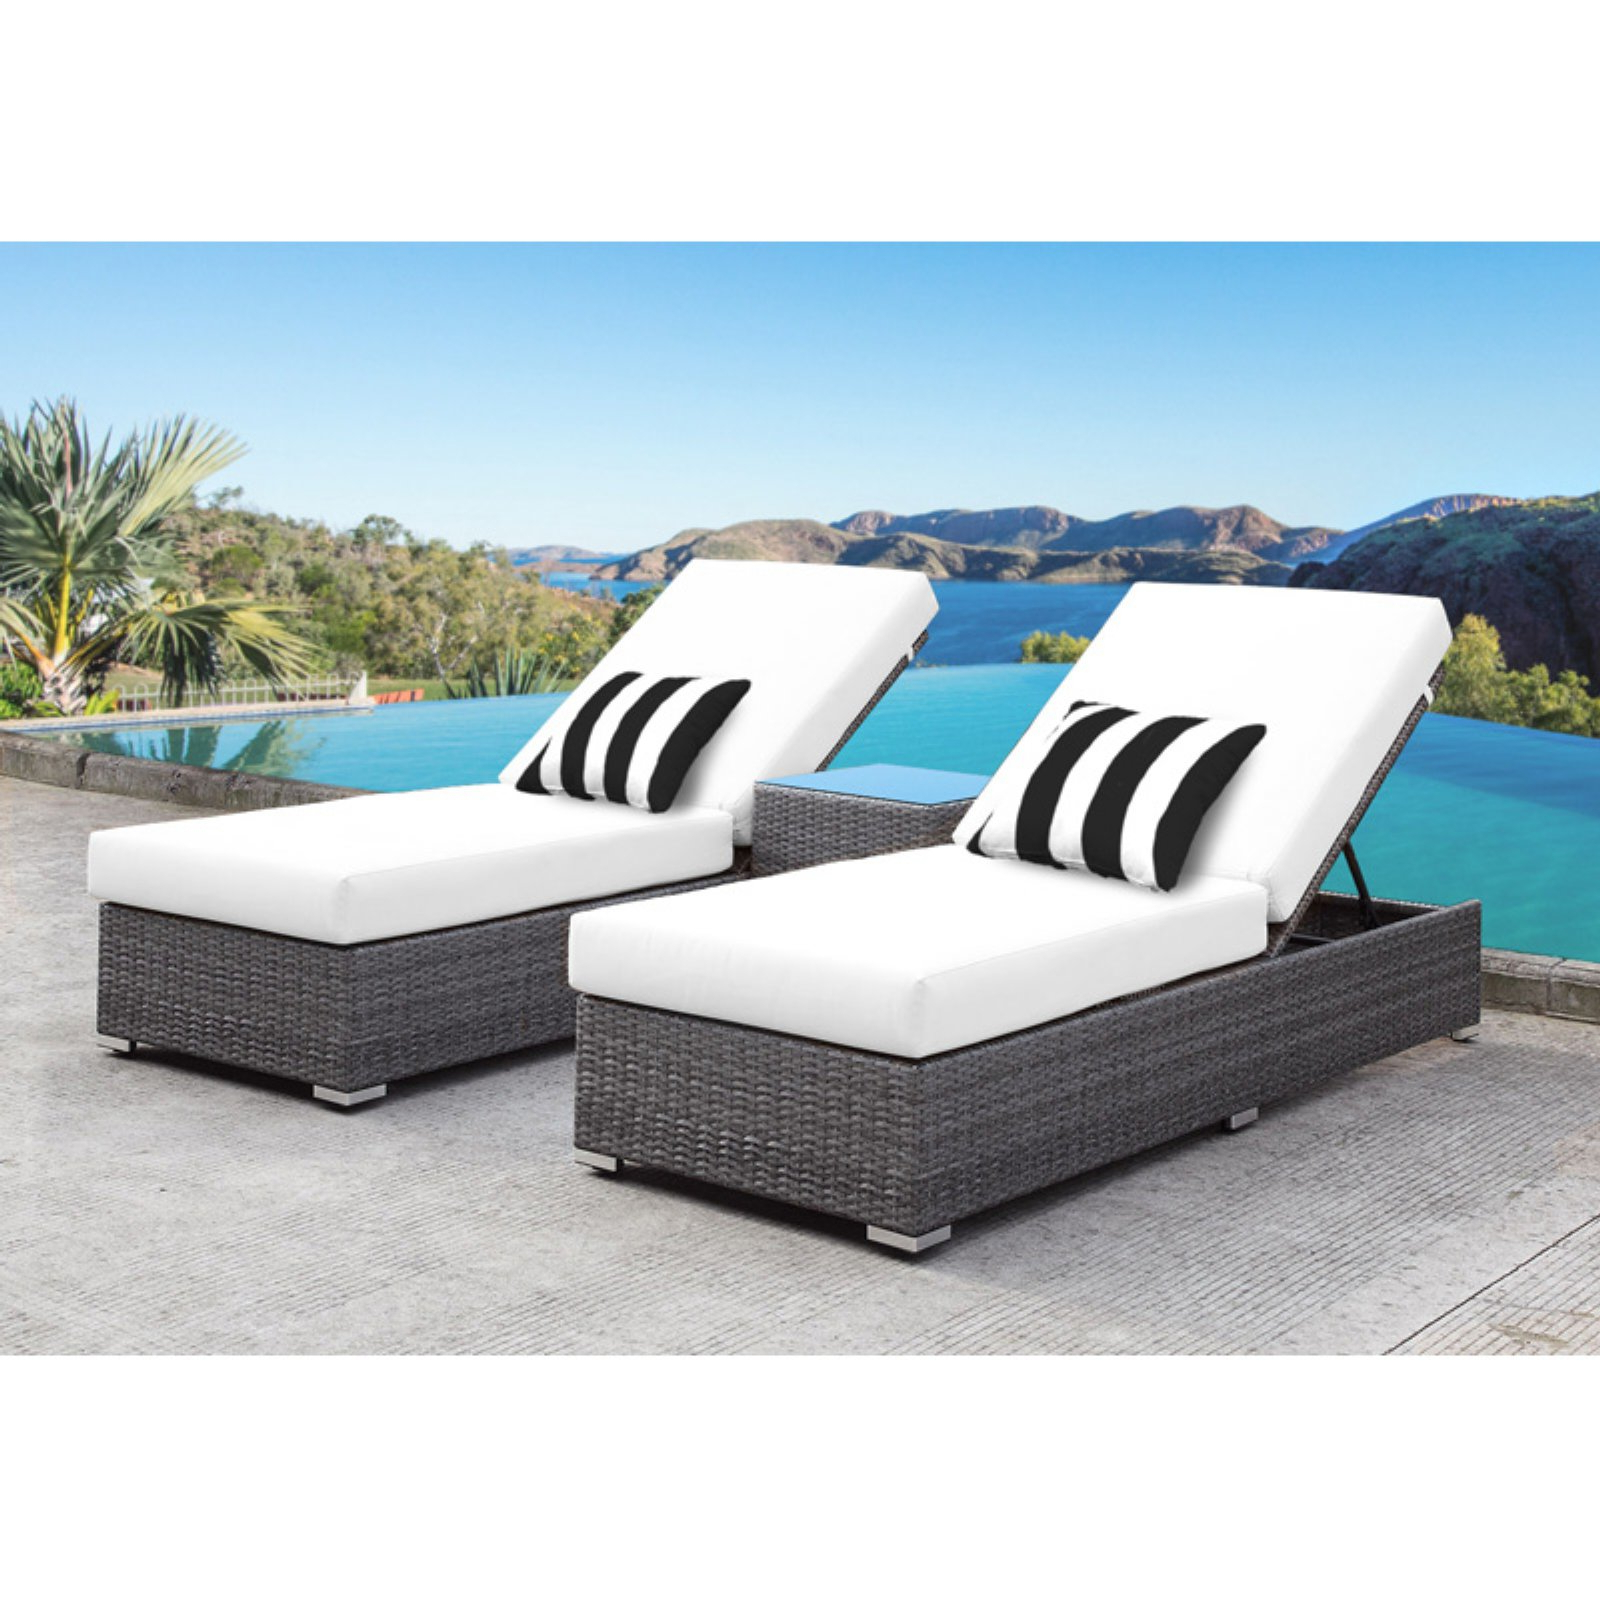 Famous Outdoor Solis Lusso Rattan Wicker 3 Piece Patio Chaise Intended For 3 Piece Patio Lounger Sets (View 11 of 25)